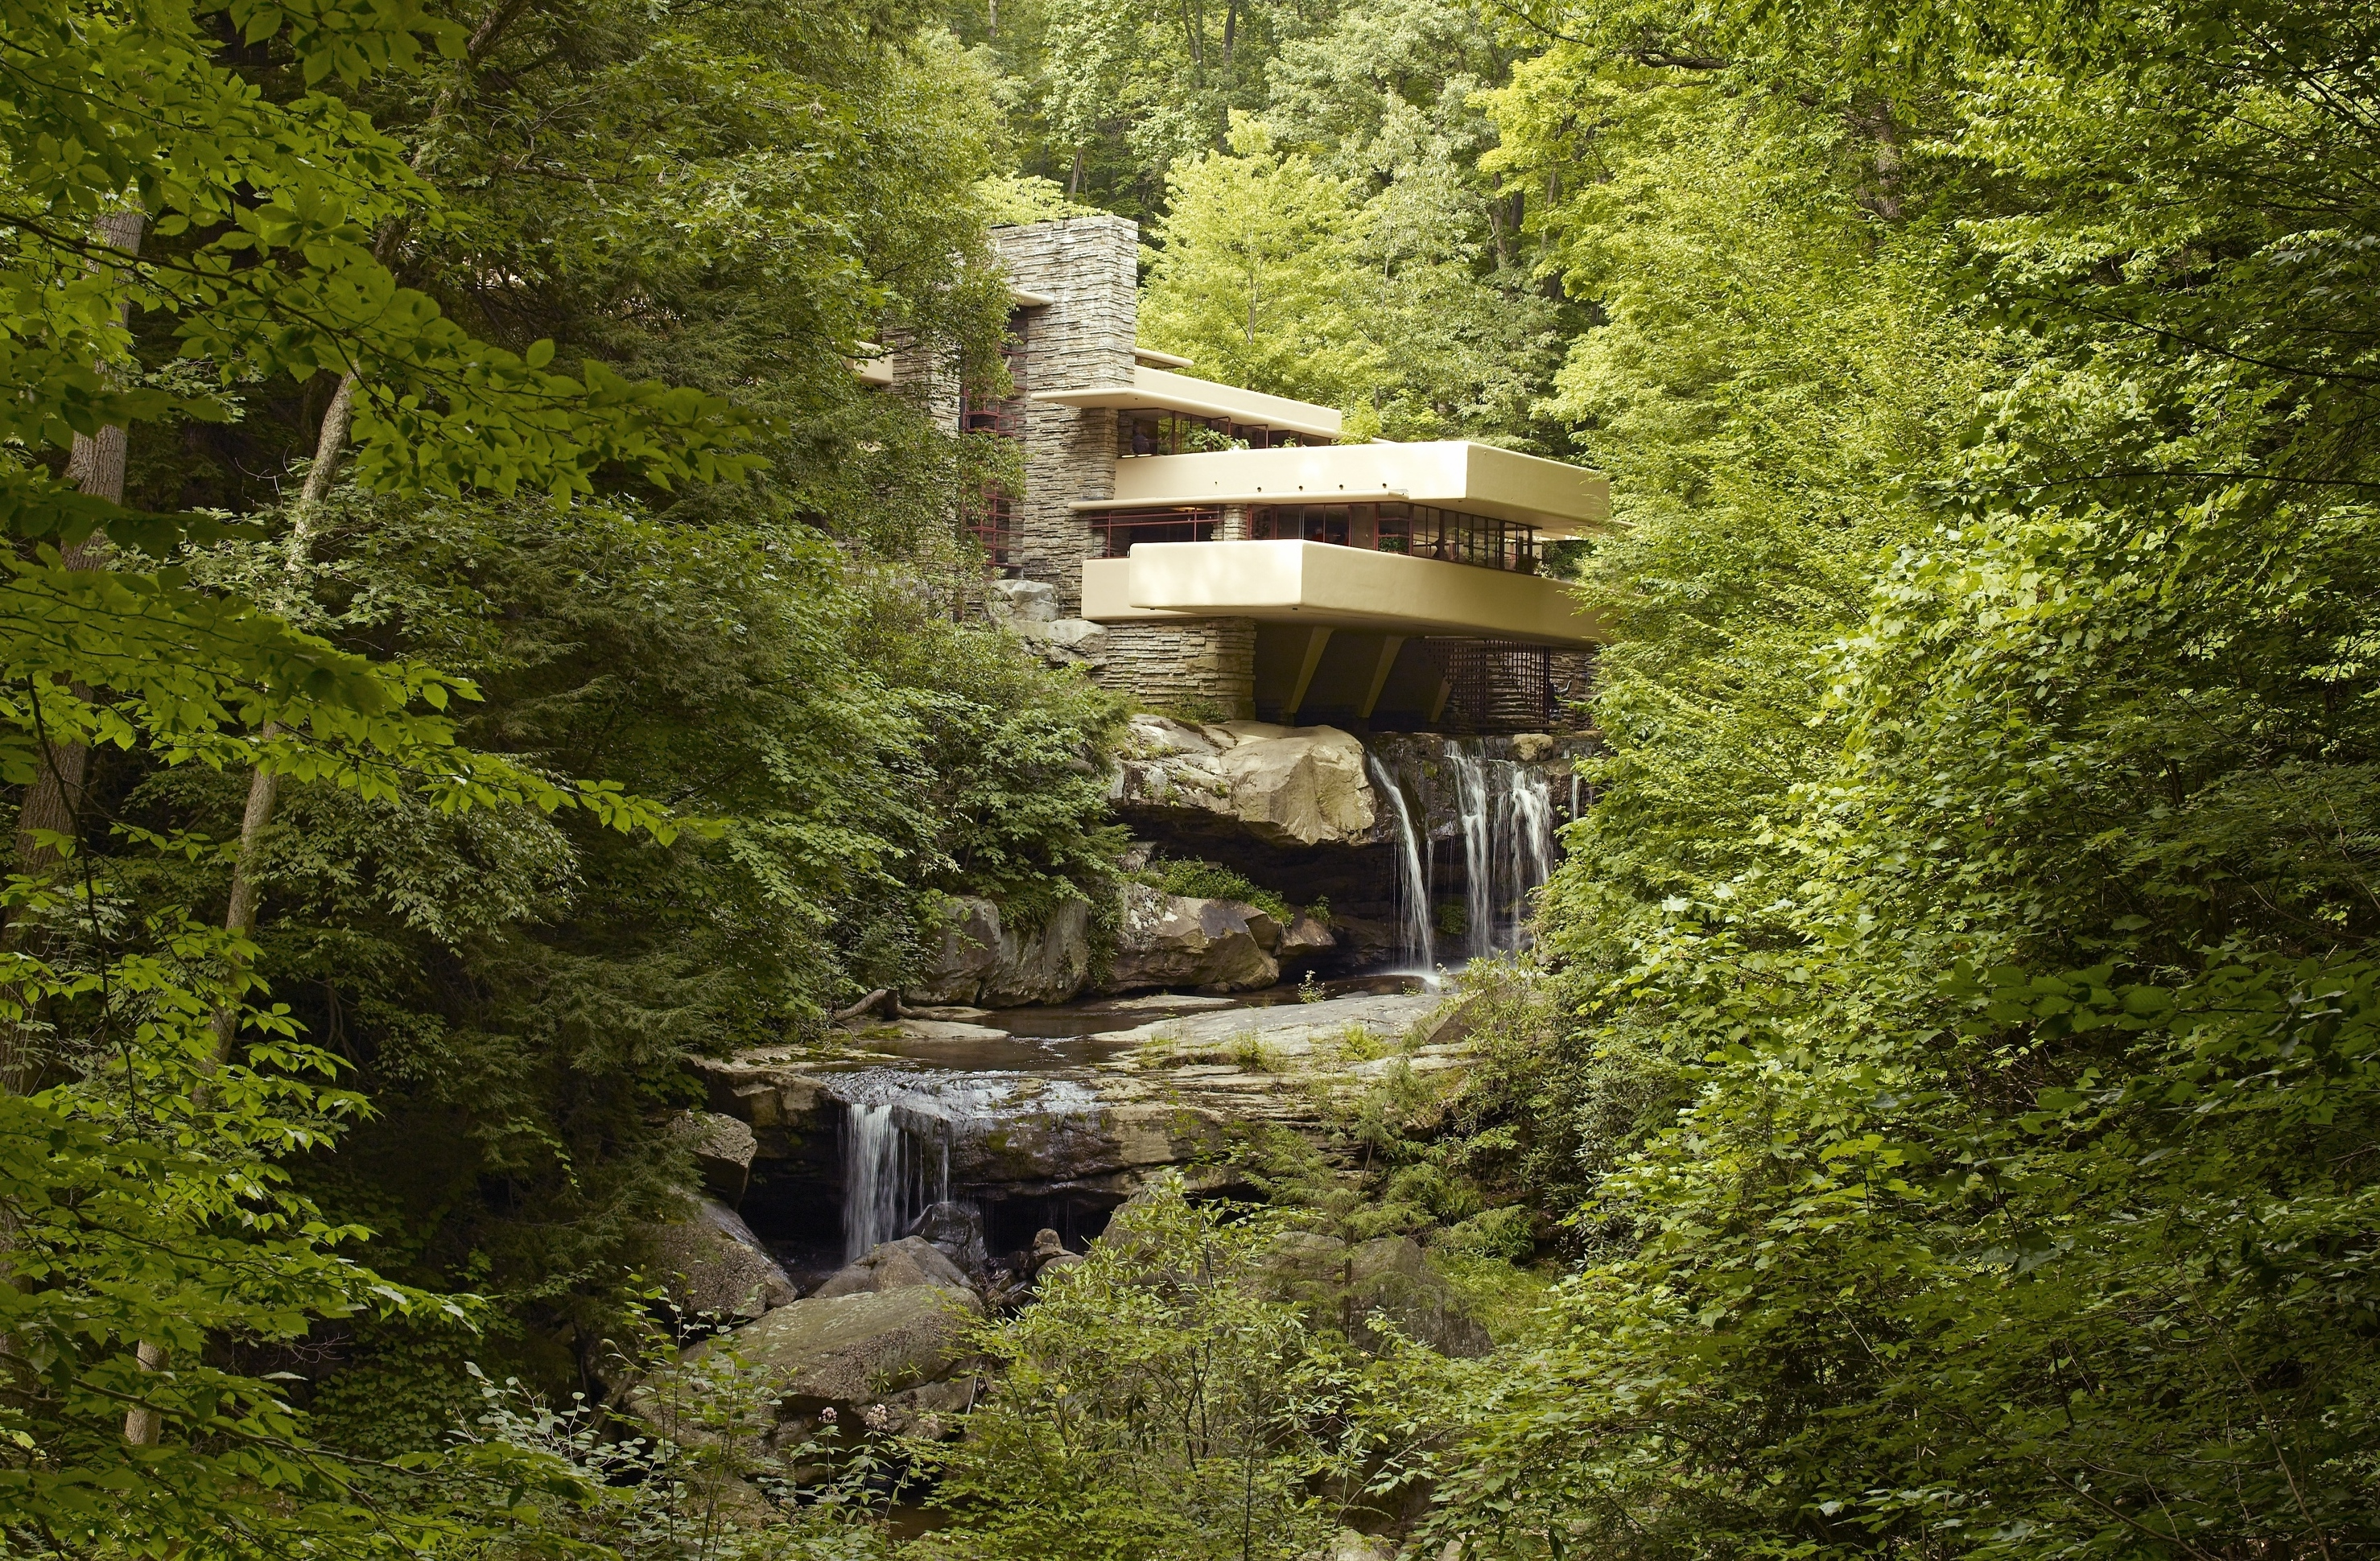 8 Frank Lloyd Wright buildings nominated to be World Heritage Sites